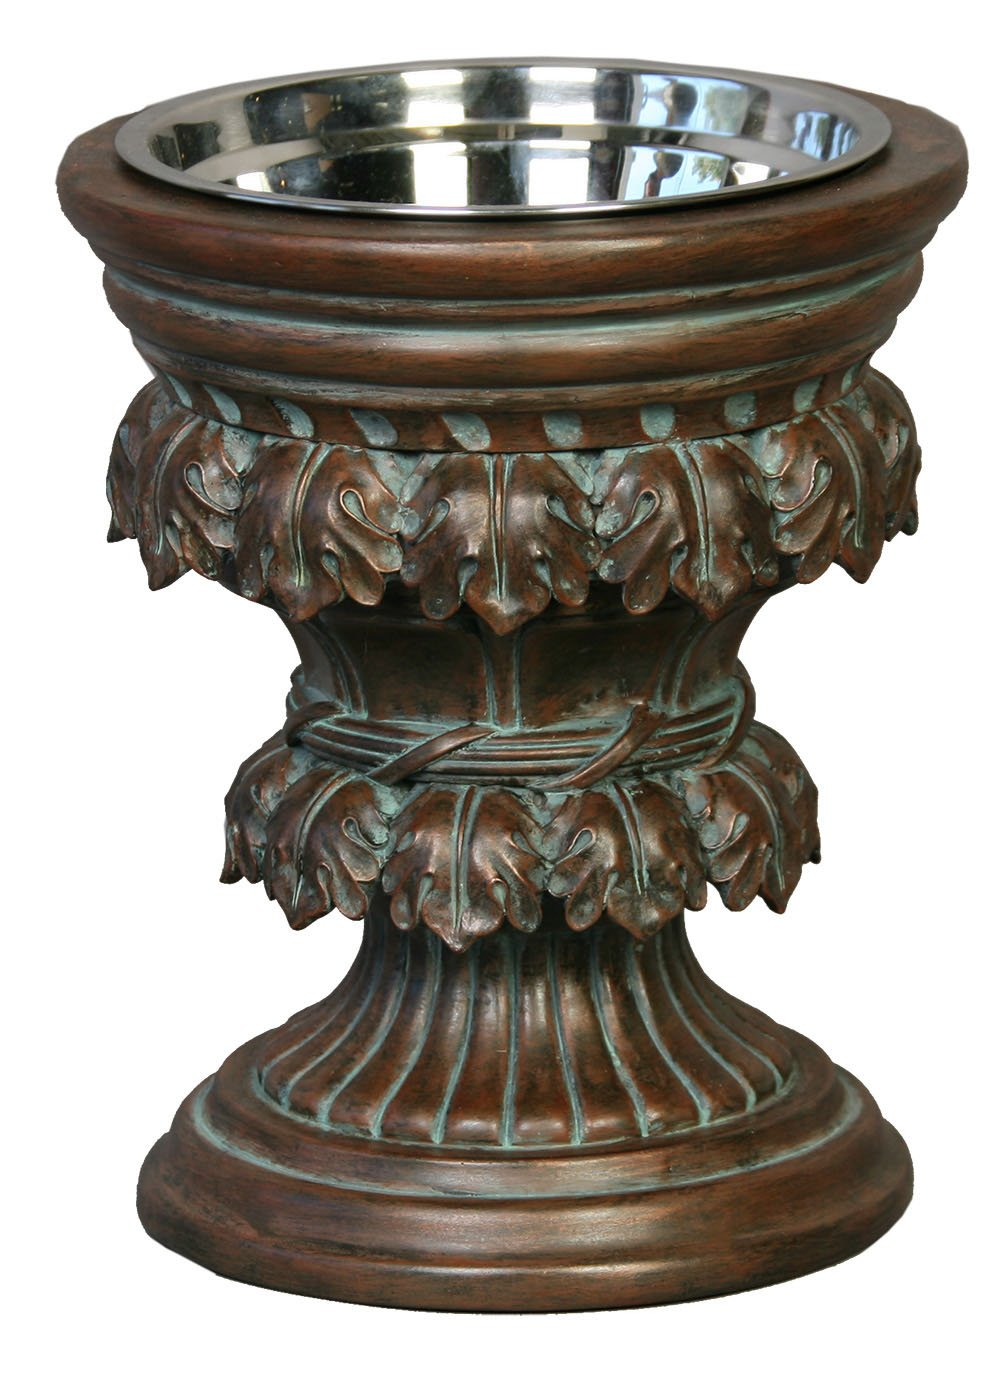 Unleashed Life Baroque Collection Raised Feeder in Oxidized Copper, Large